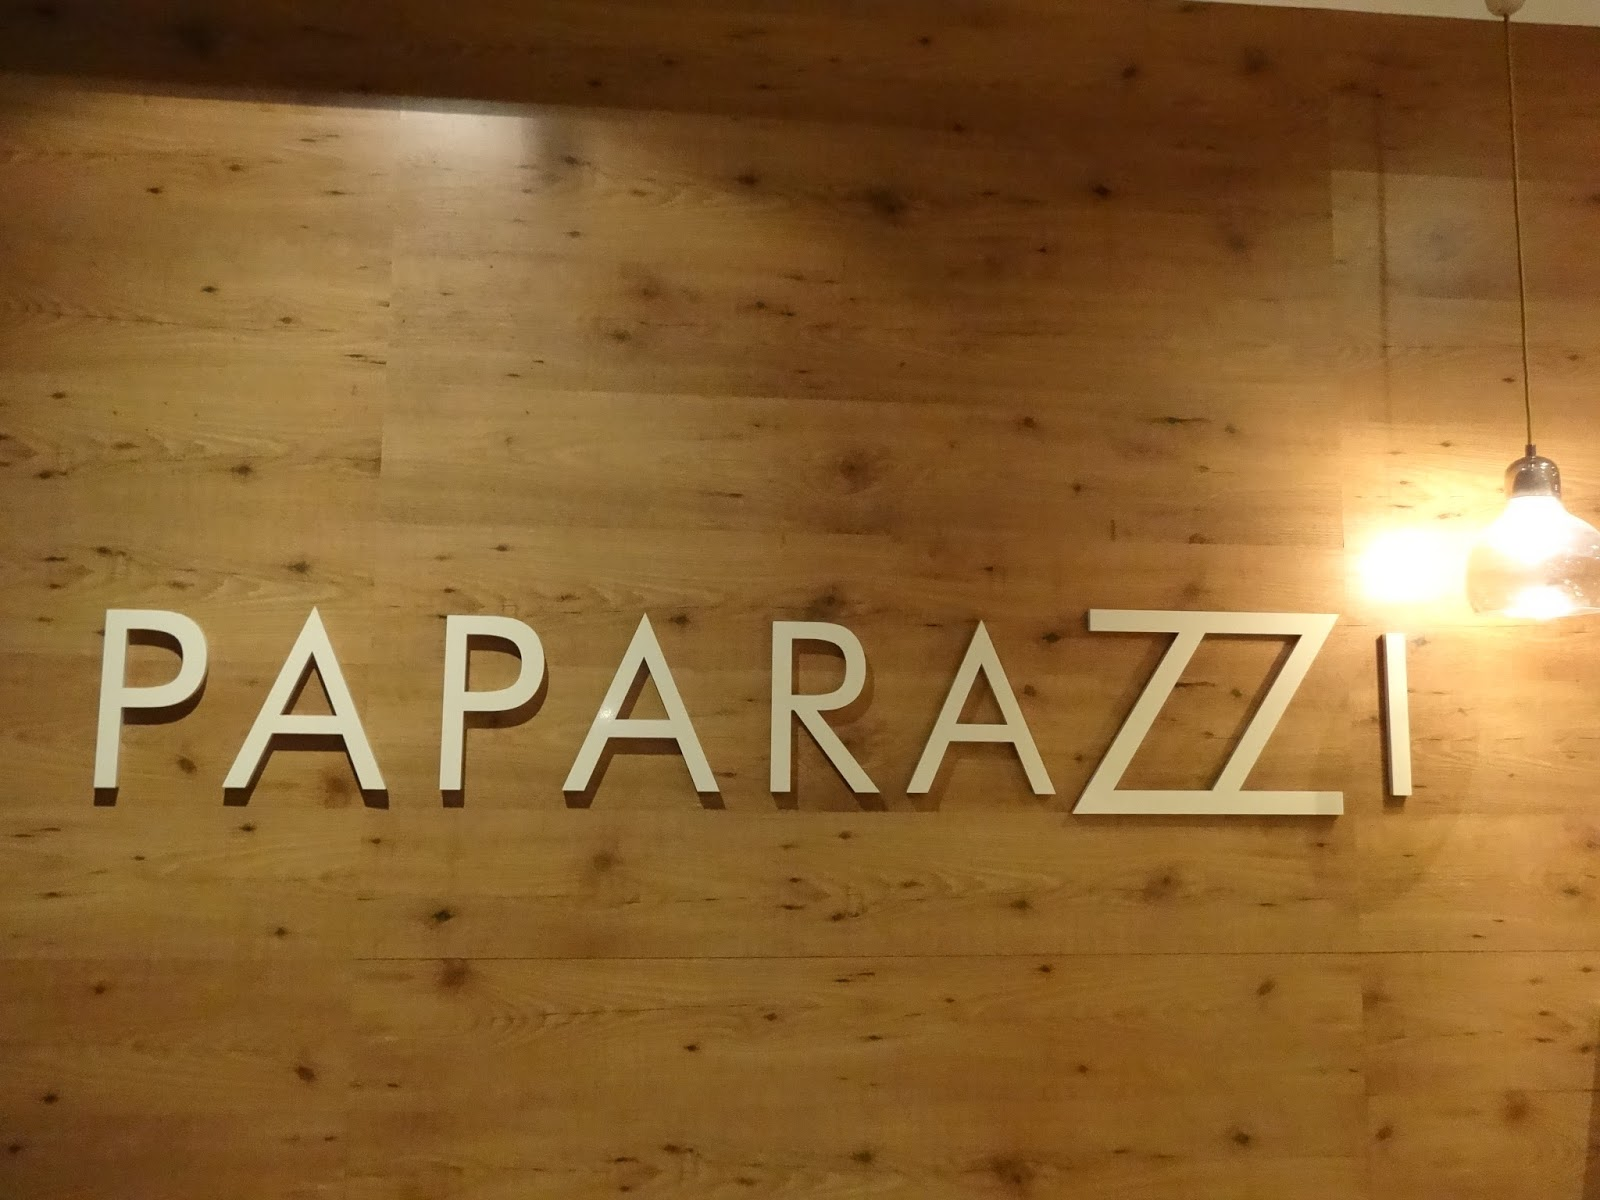 caffe paparazzi, adelaide, food, clean eating, healthy, cafe, dinner, lunch, sweets, dessert, refined sugar free, malvern, gluten free,